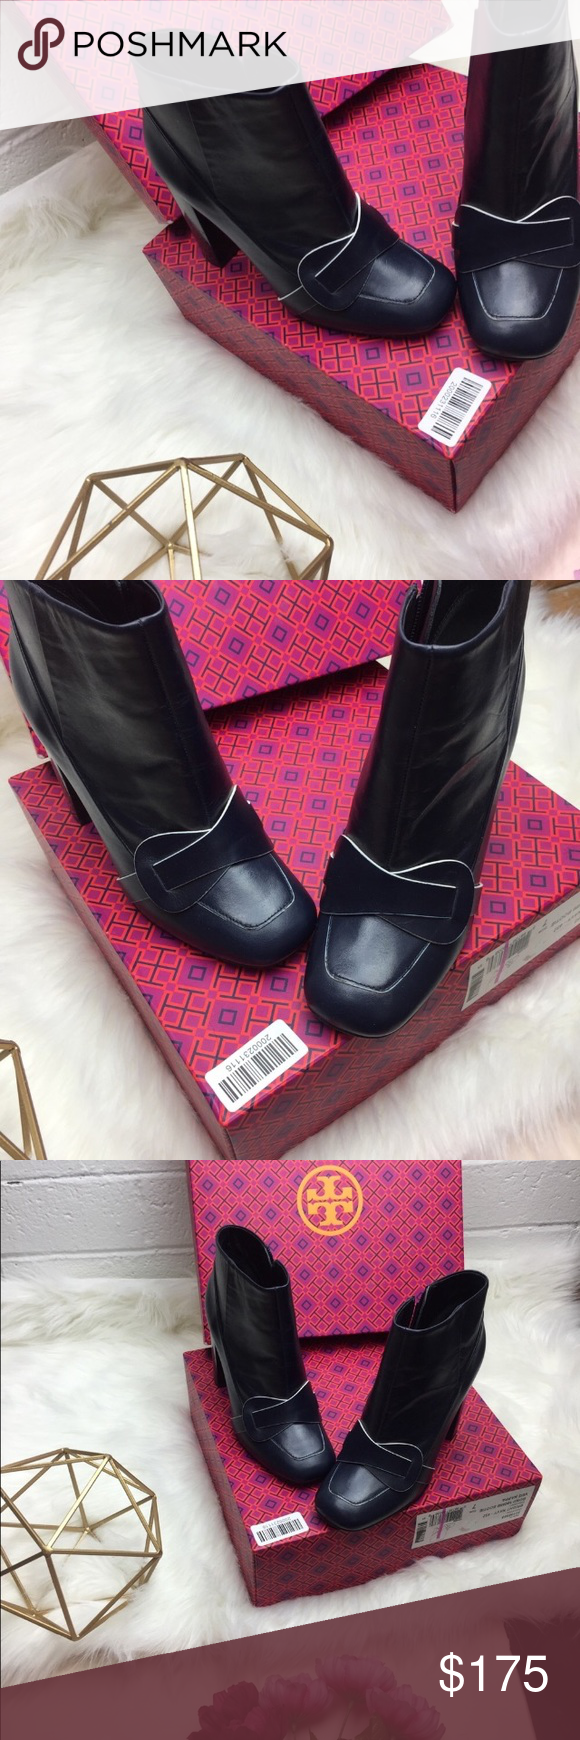 e742d9a9be90 Tory Burch bond bright navy blue booties 7m Brand new with the box No trade